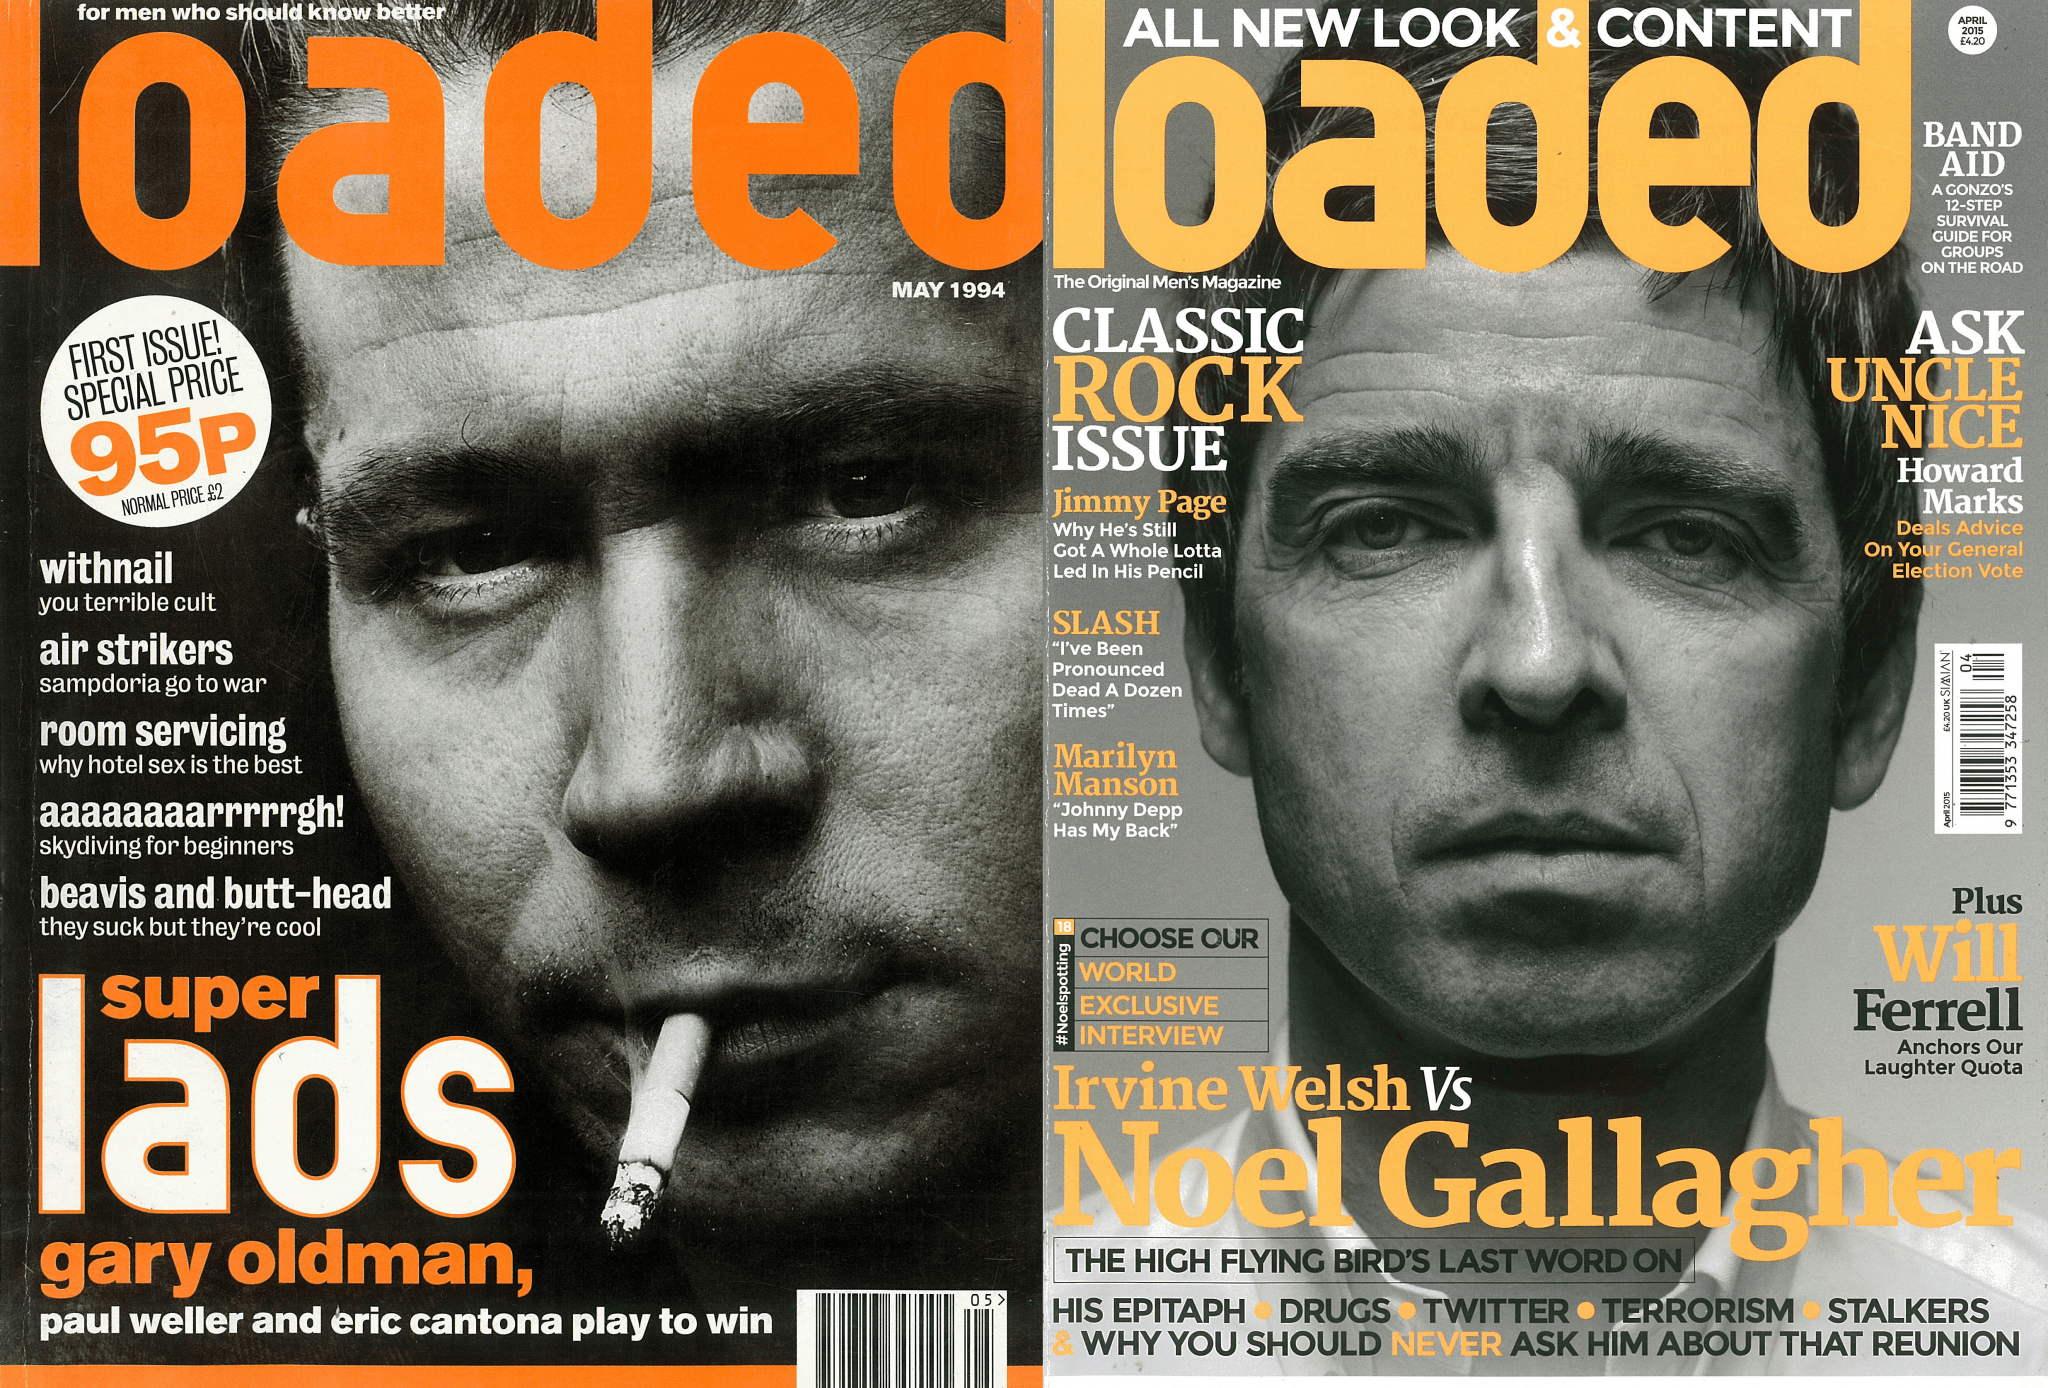 Gary Oldman and Noel Gallagher on the cover of the first and last Loaded magazine covers